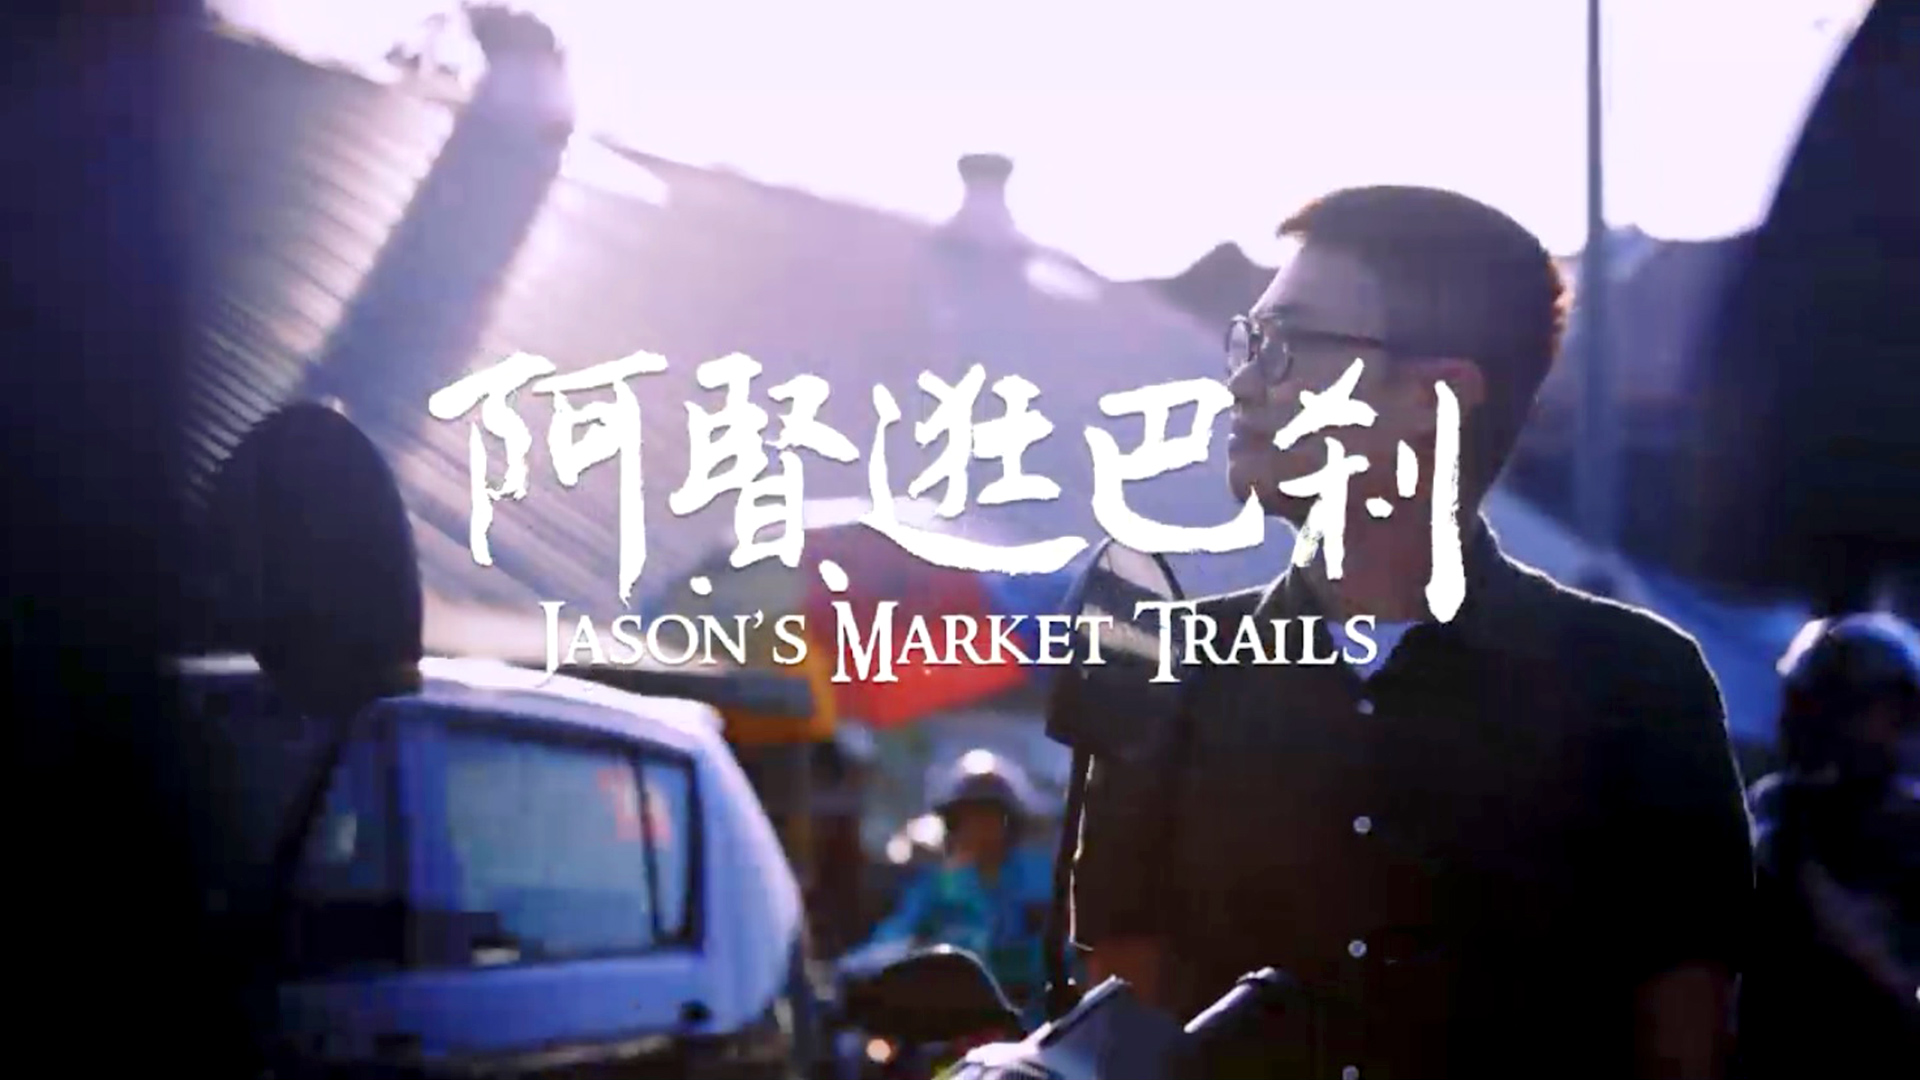 JASON'S MARKET TRAILS